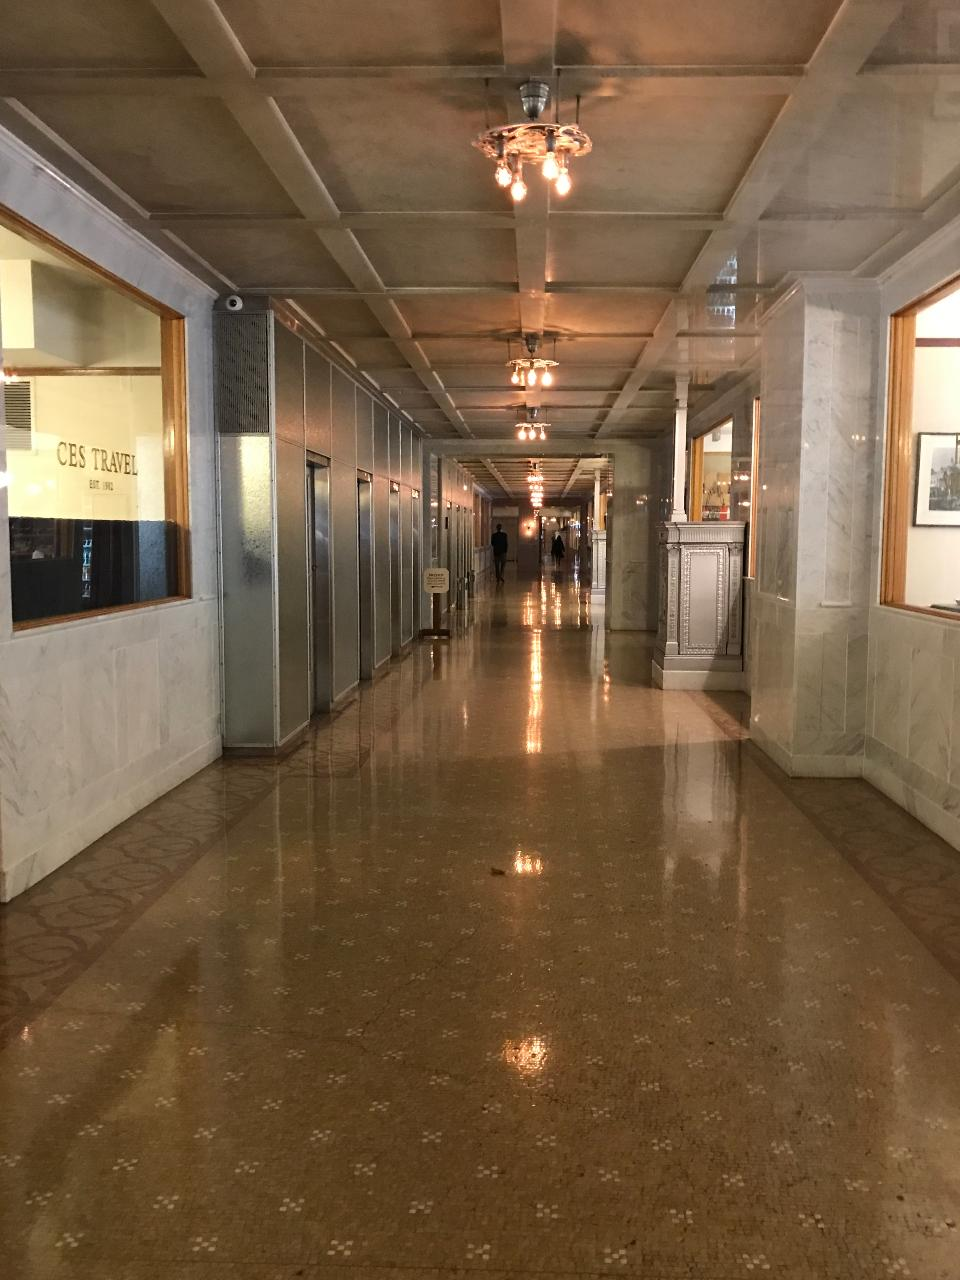 Free Chicago Walking Tour Inside a Historic Skyscraper